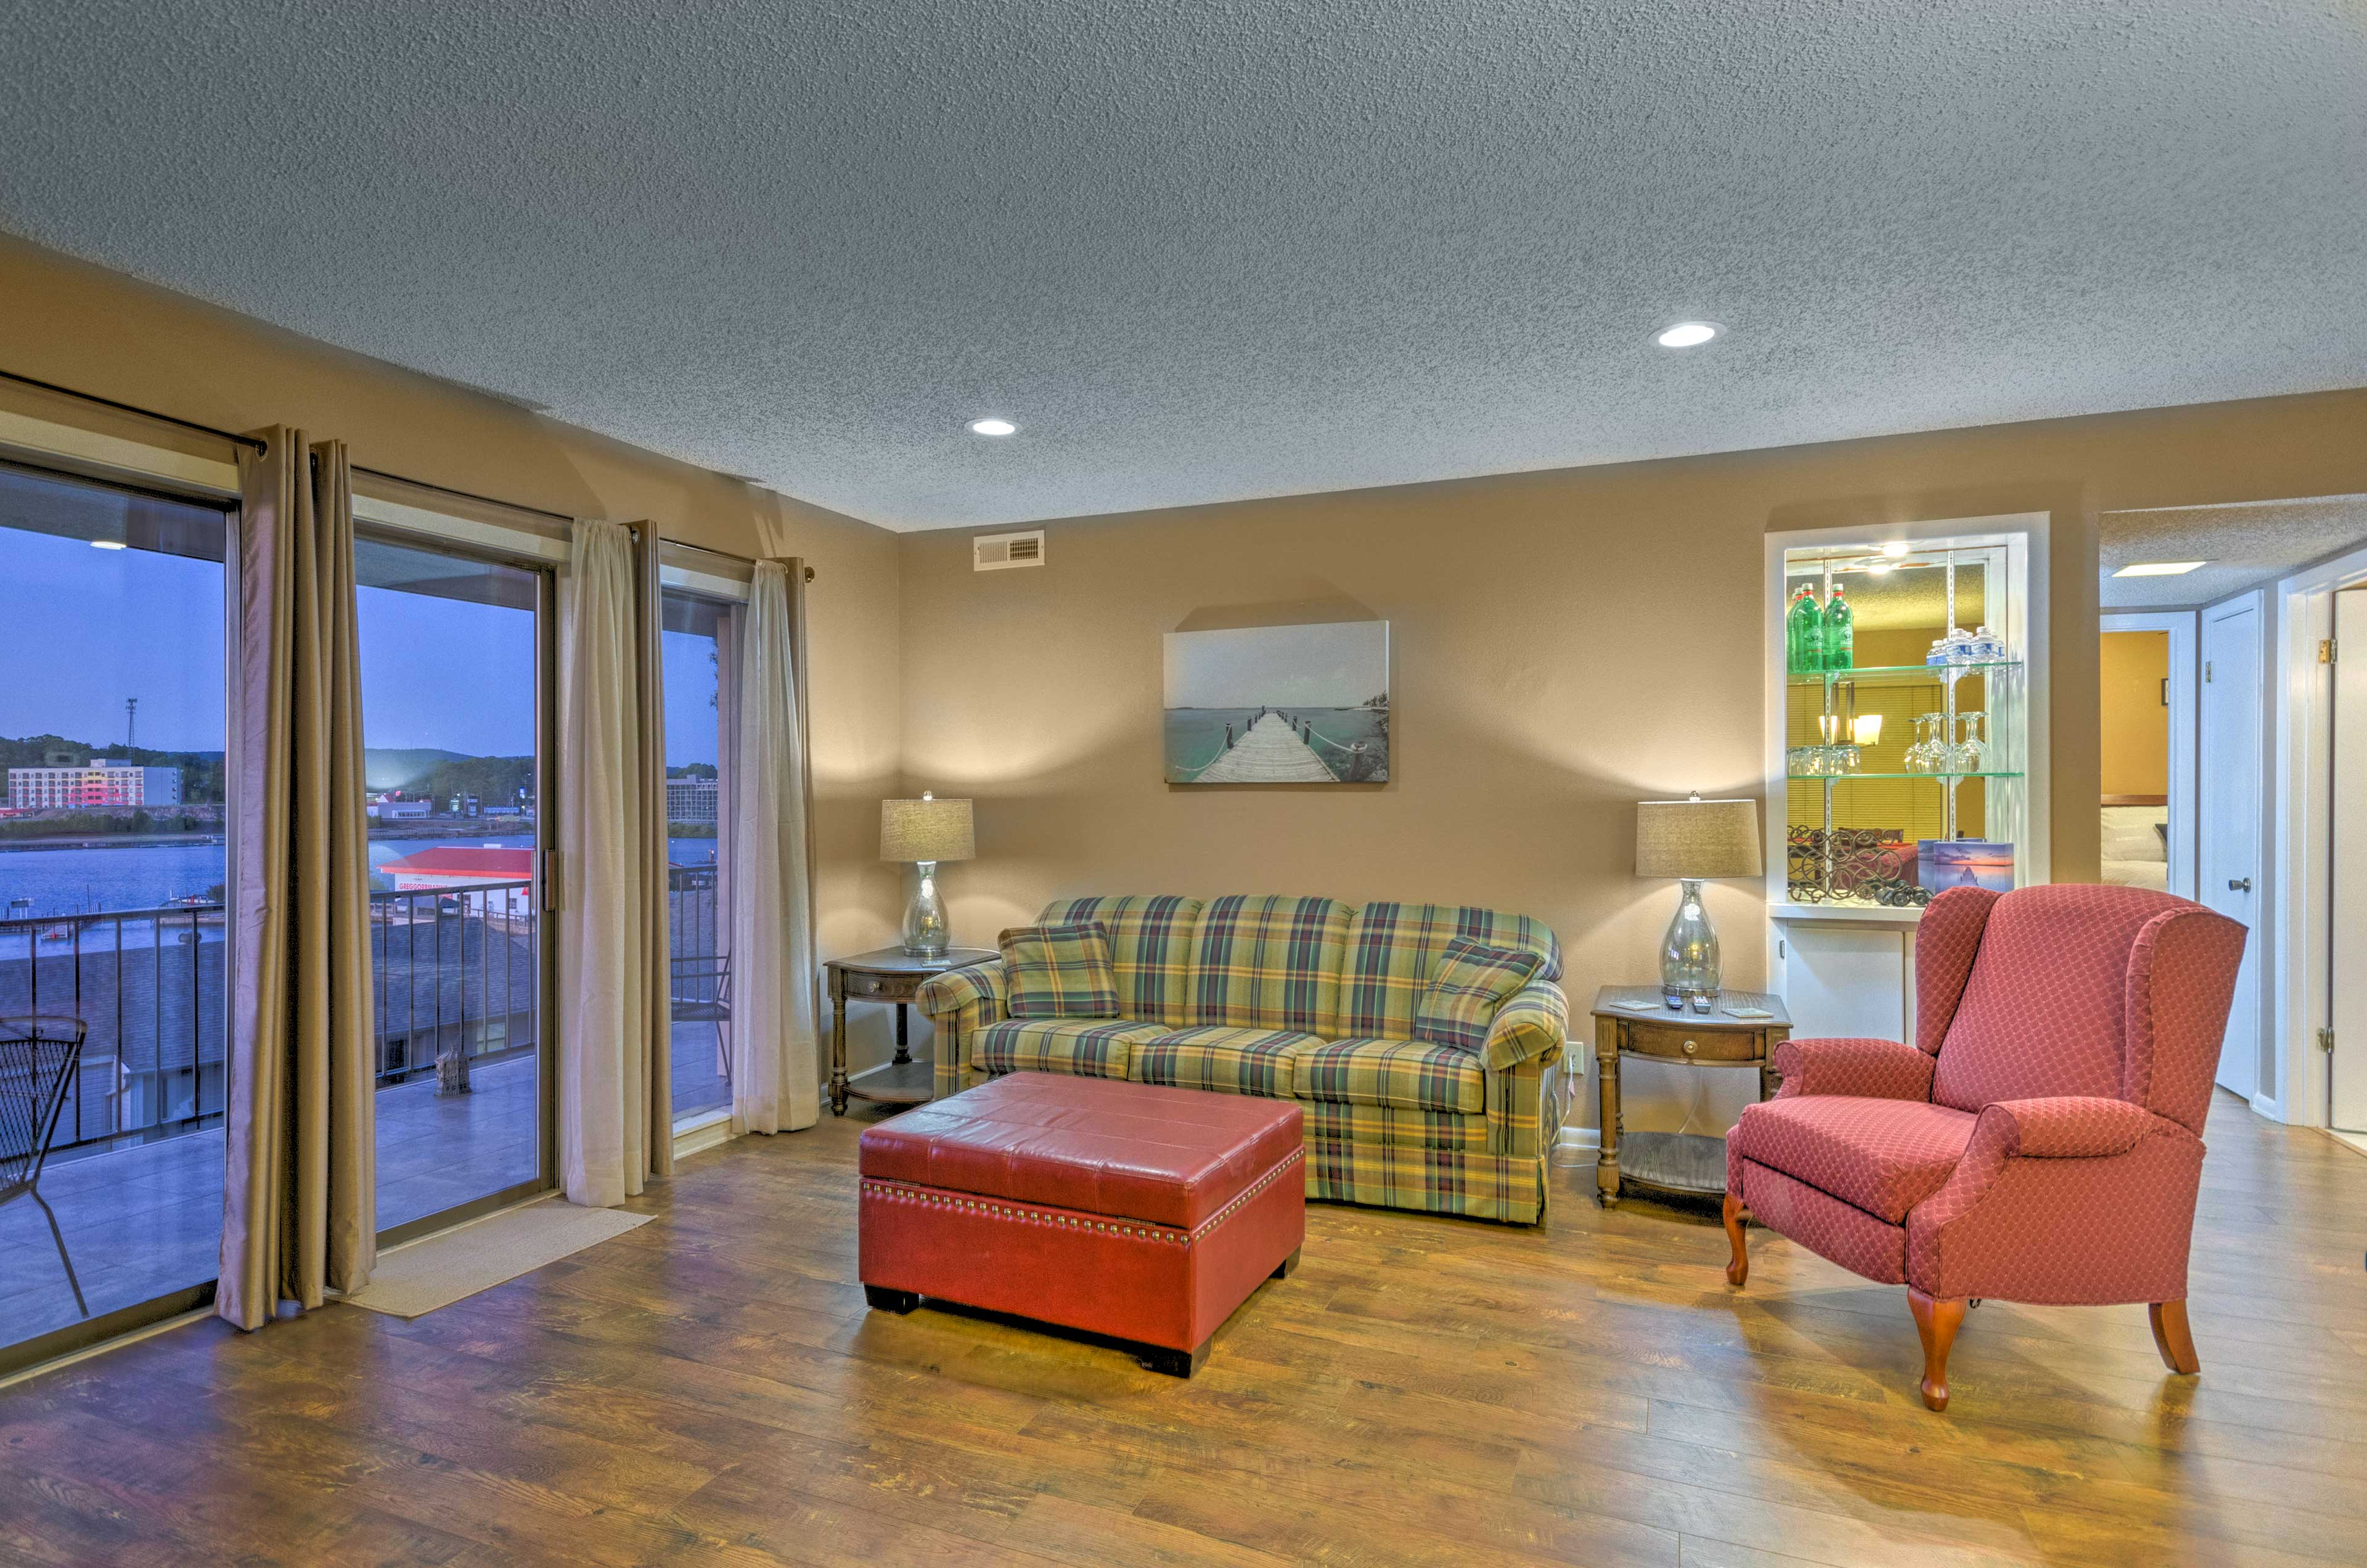 You'll have lake views from the cozy couch.